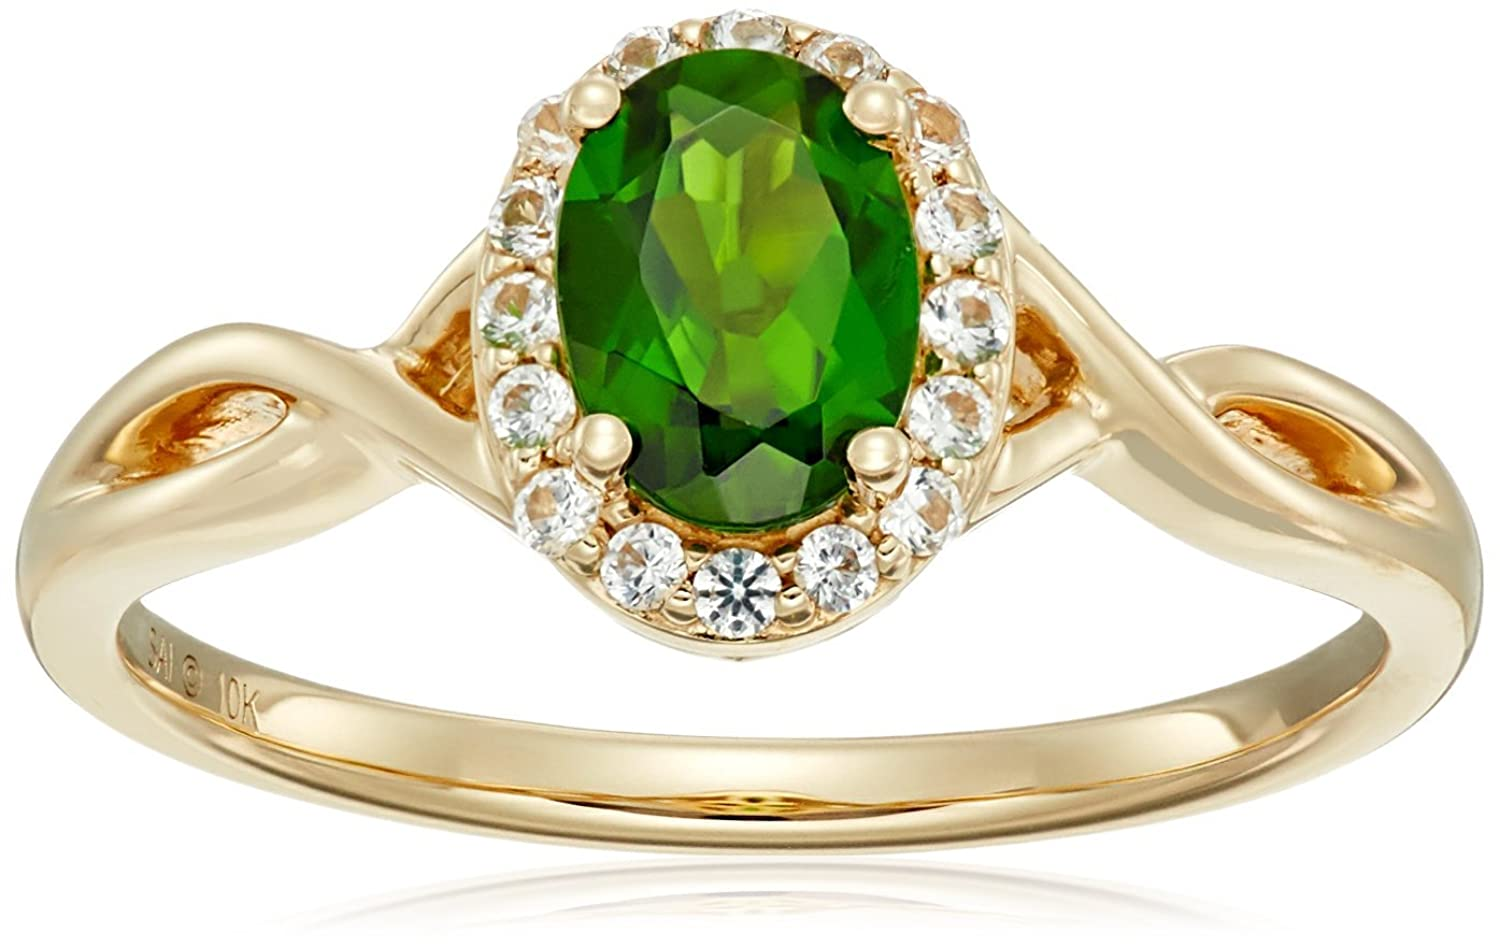 10k Yellow Gold Chrome Diopside and Created White Sapphire Ring, Size 7